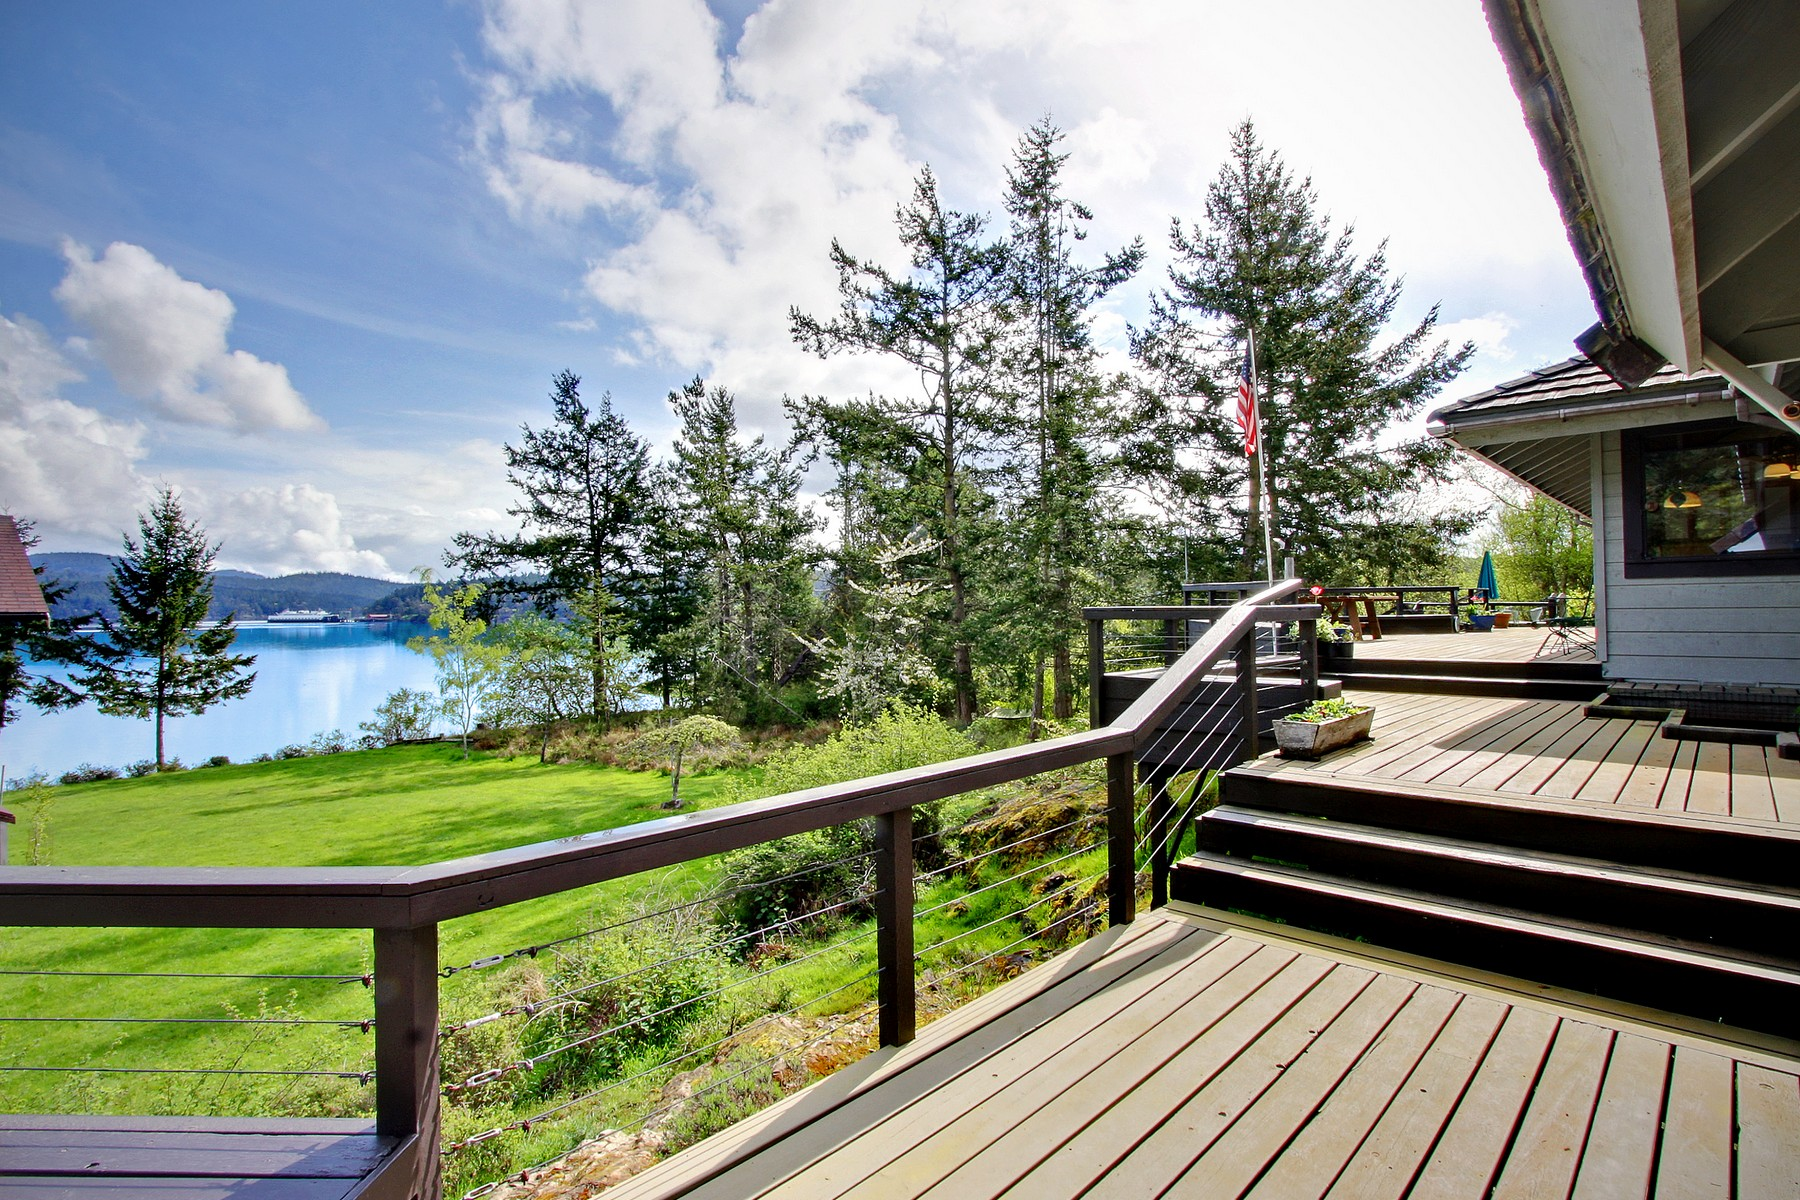 Single Family Home for Sale at Beautiful Waterfront Compound on Shaw Island 378 Smugglers Cove Road Shaw Island, Washington 98286 United States